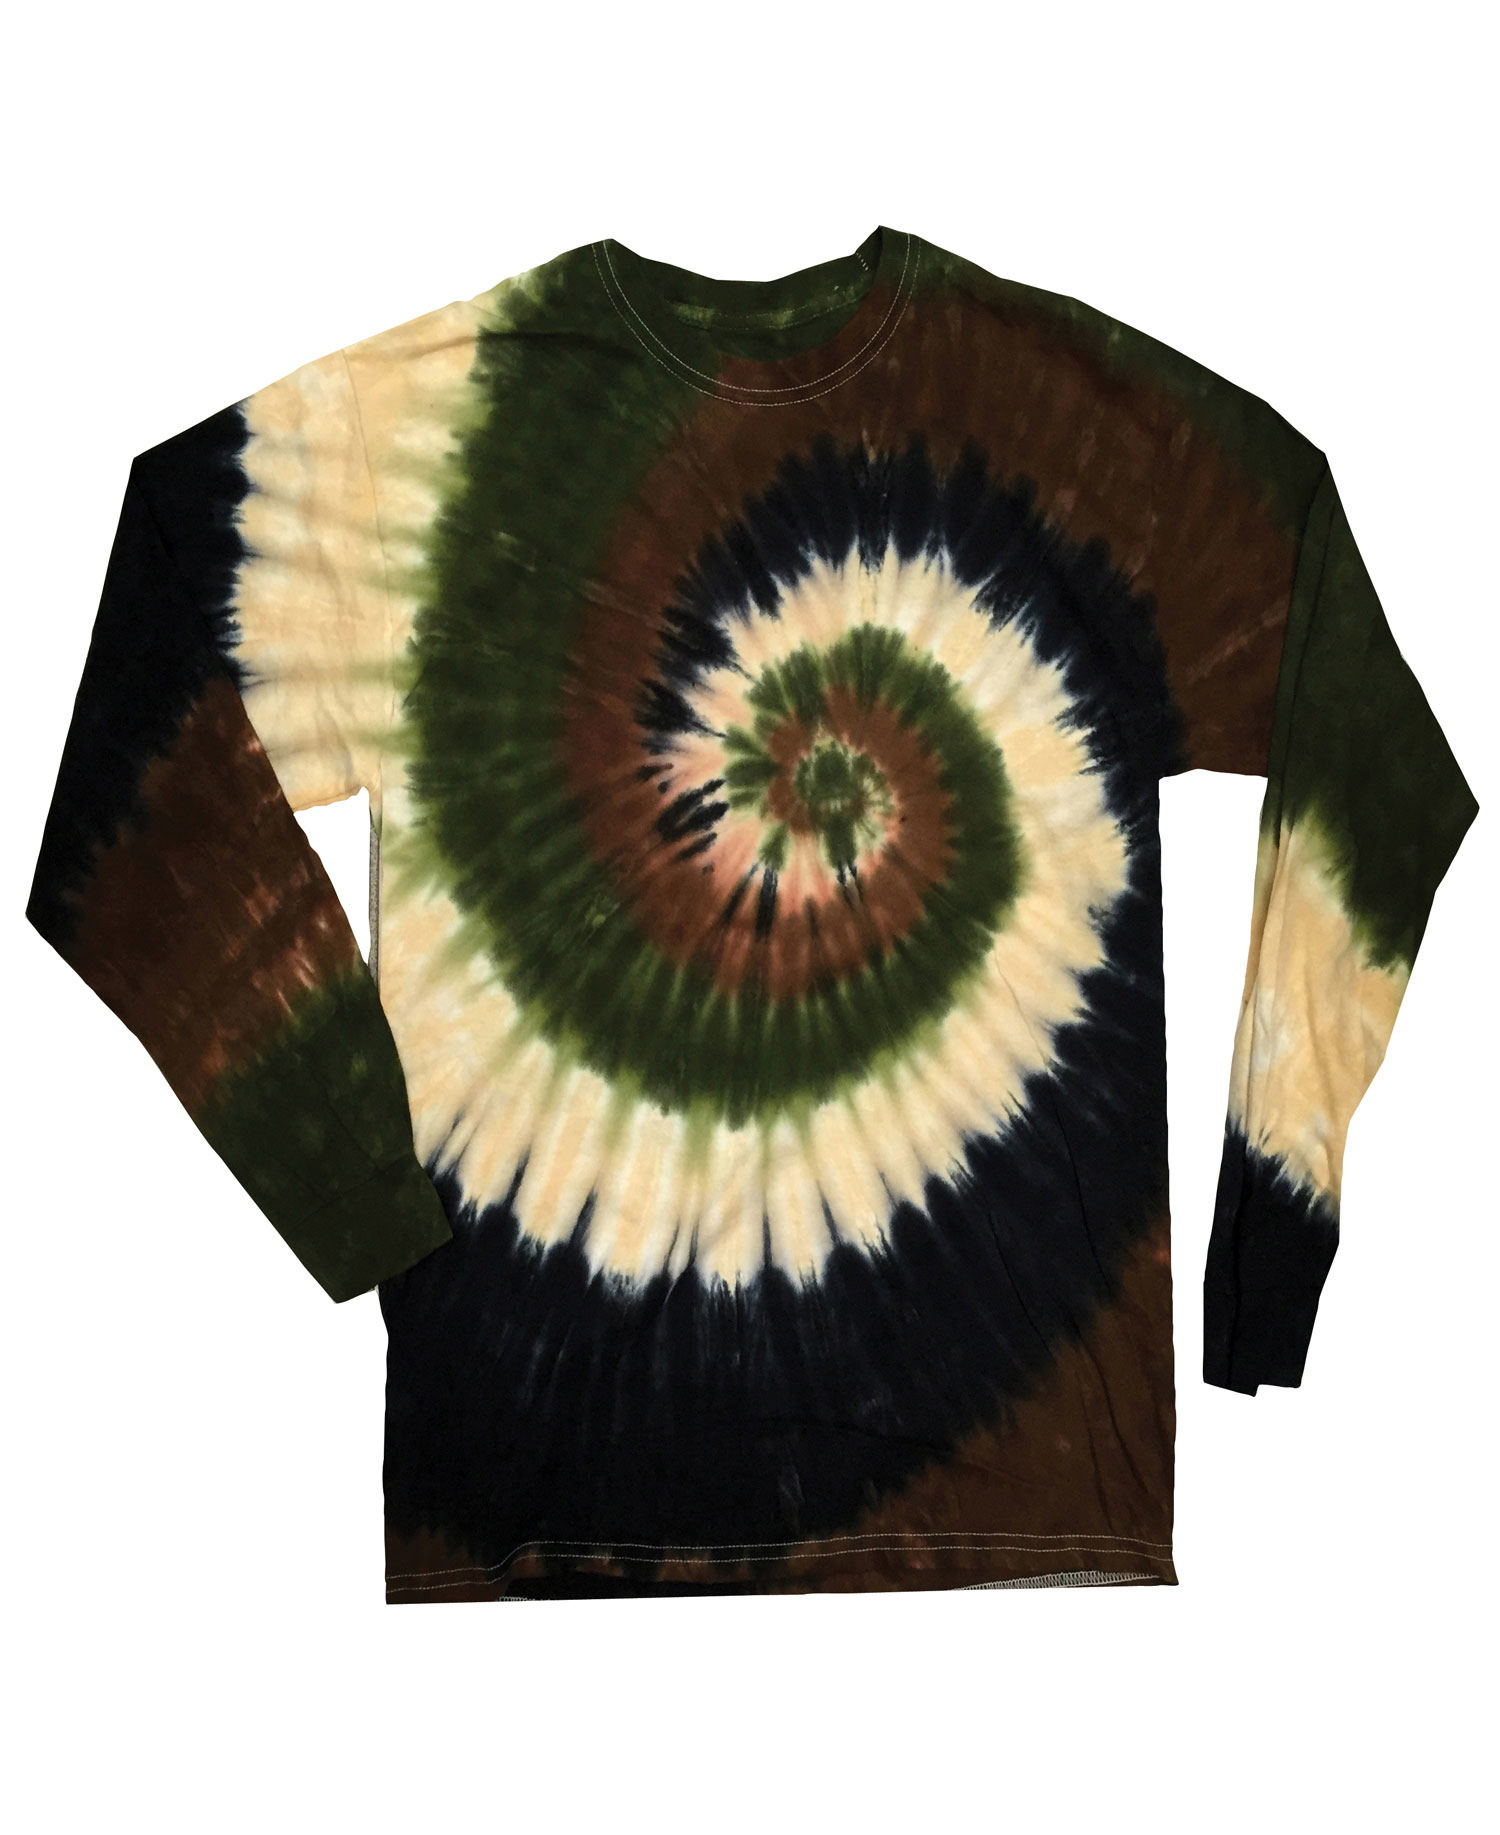 Colortone - T902P Camo Swirl Yth Long Sleeve